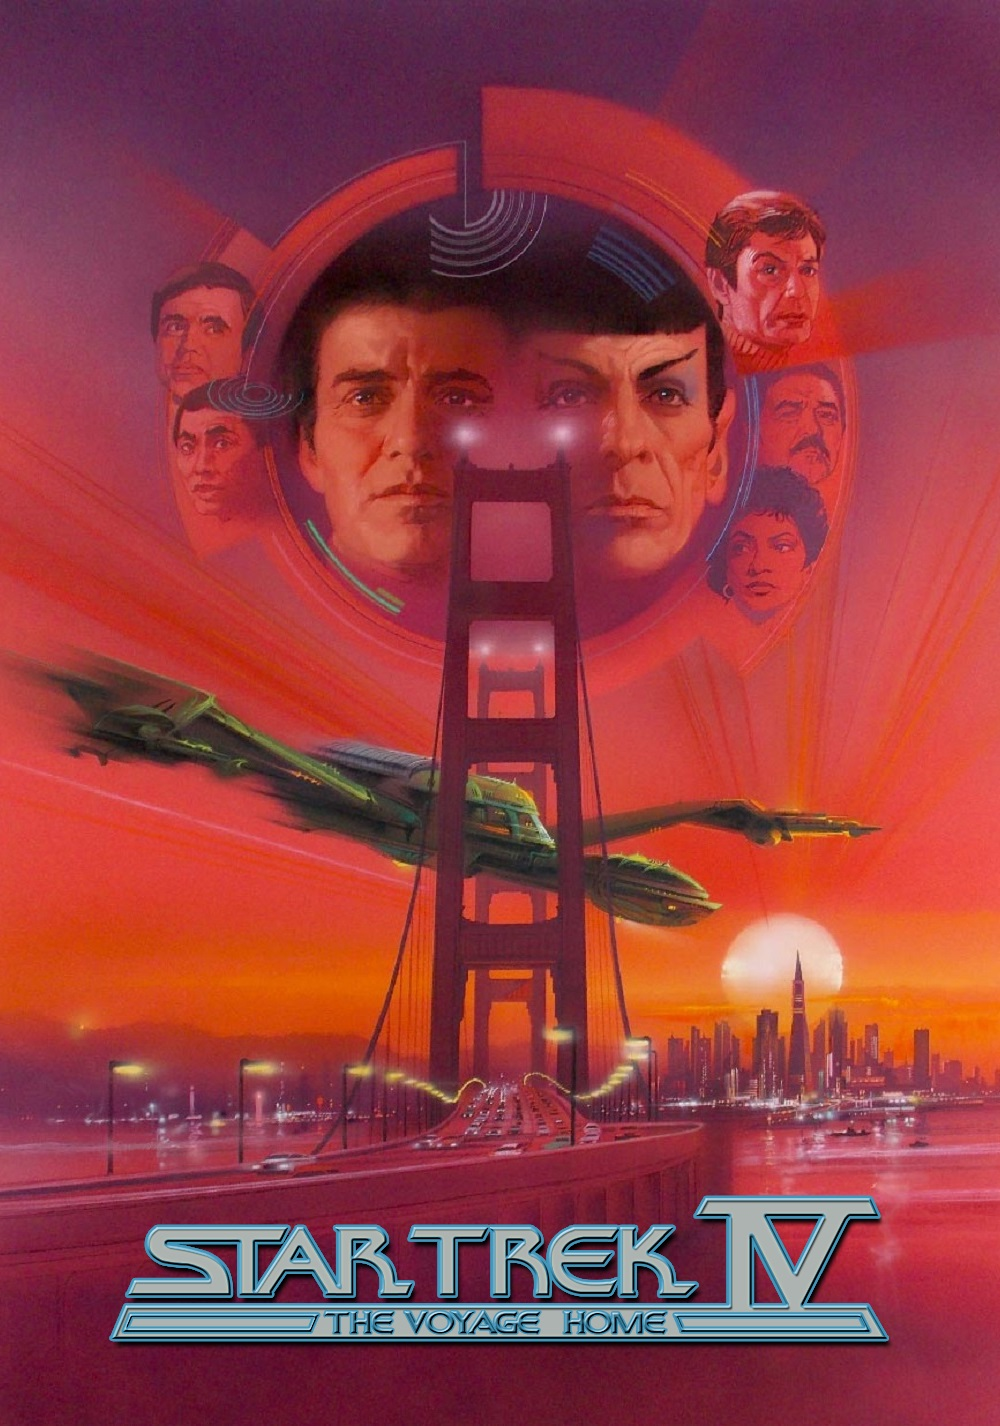 A movie poster for Star Trek IV featuring the faces of all the crew members around the Golden Gate Bridge and a spaceship.